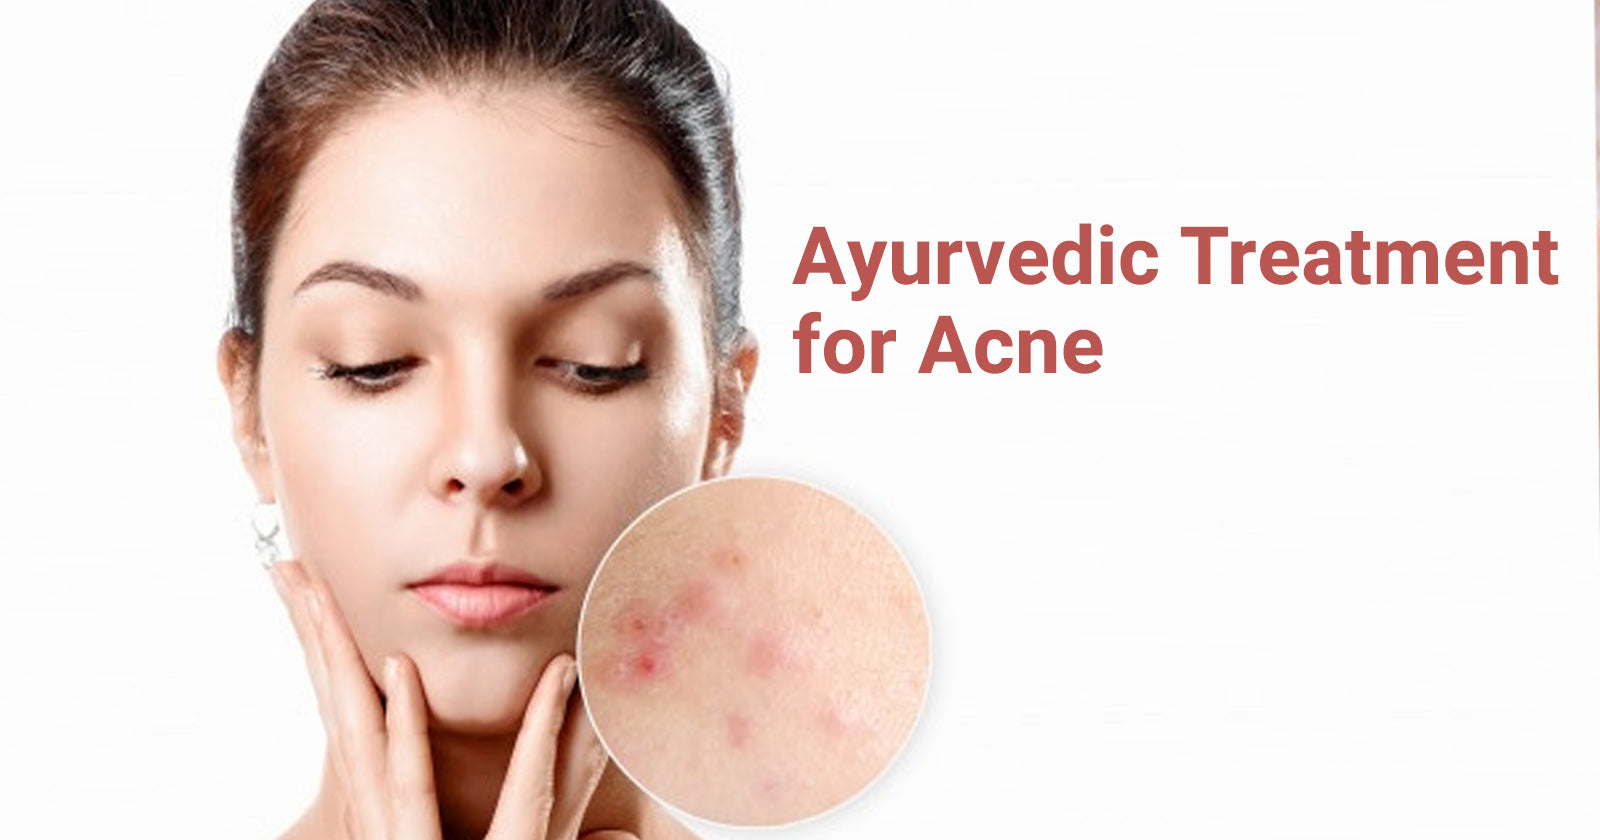 ayurvedic treatment for acne